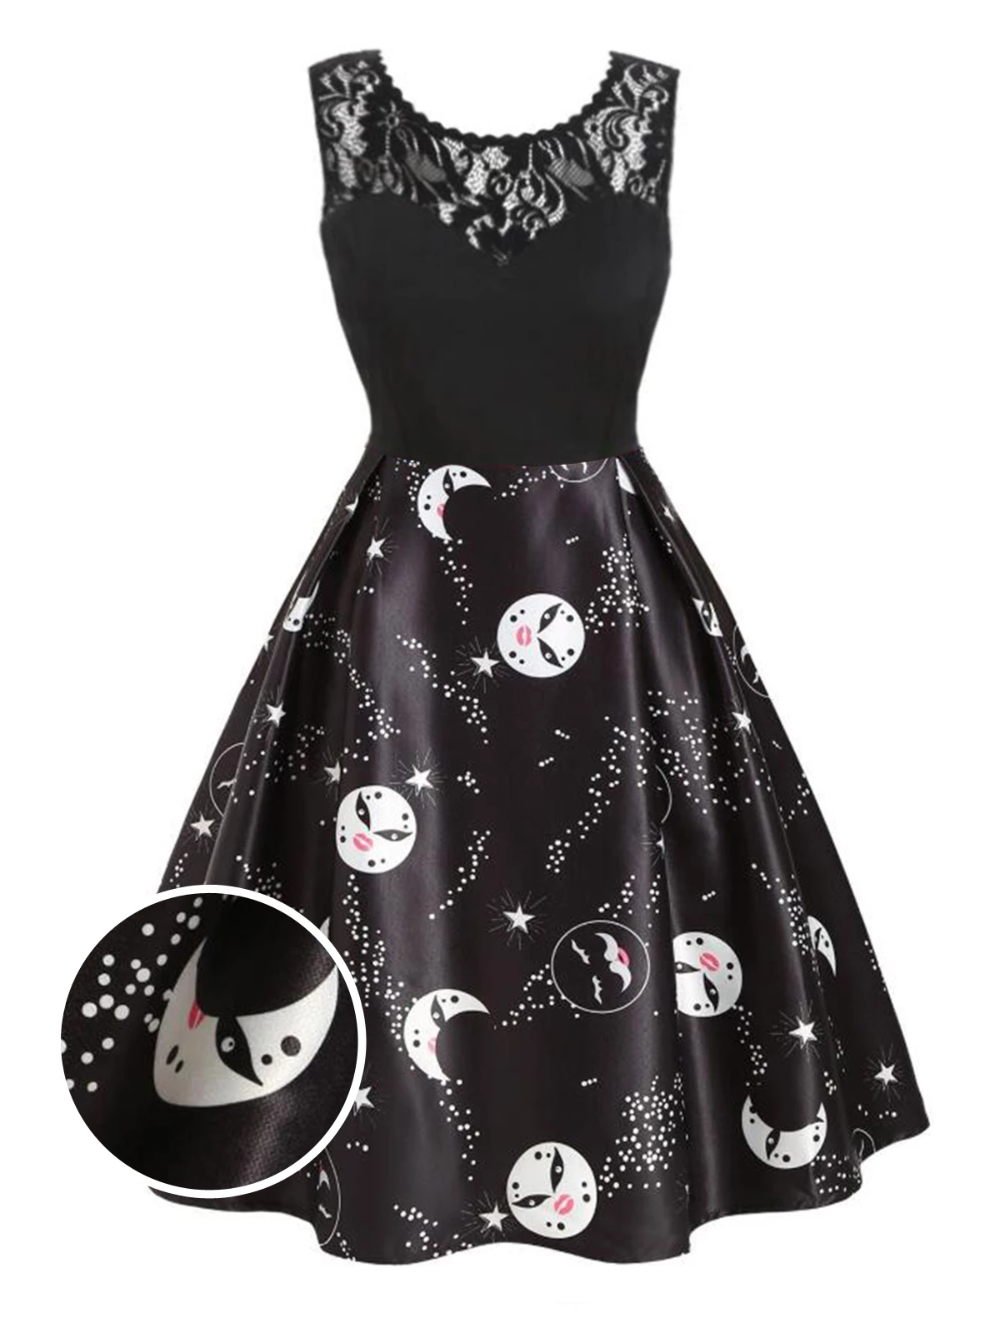 Black 1950s Moon Stars Swing Dress Retro Stage Chic Vintage Dresses And Accessories Lace Dress Vintage Vintage Dresses Casual Dresses